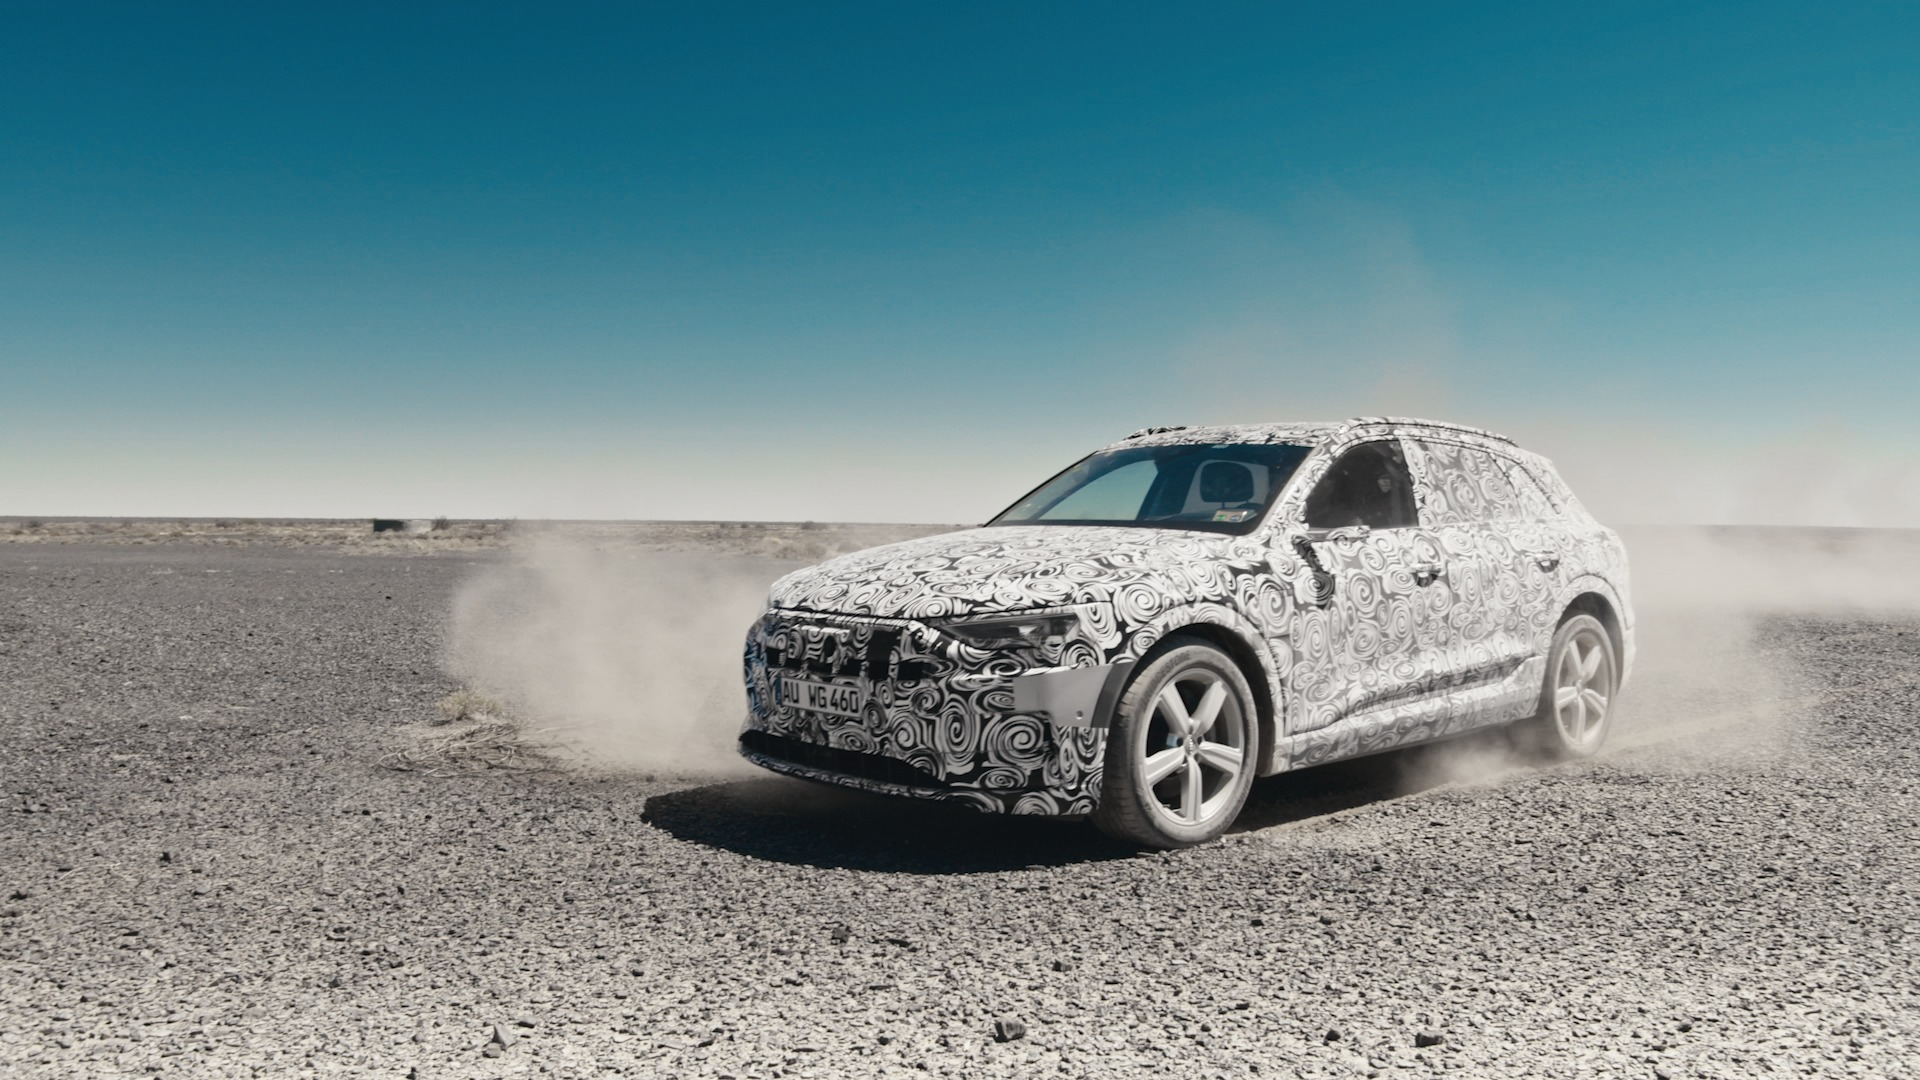 Trailer: the Audi e-tron prototype